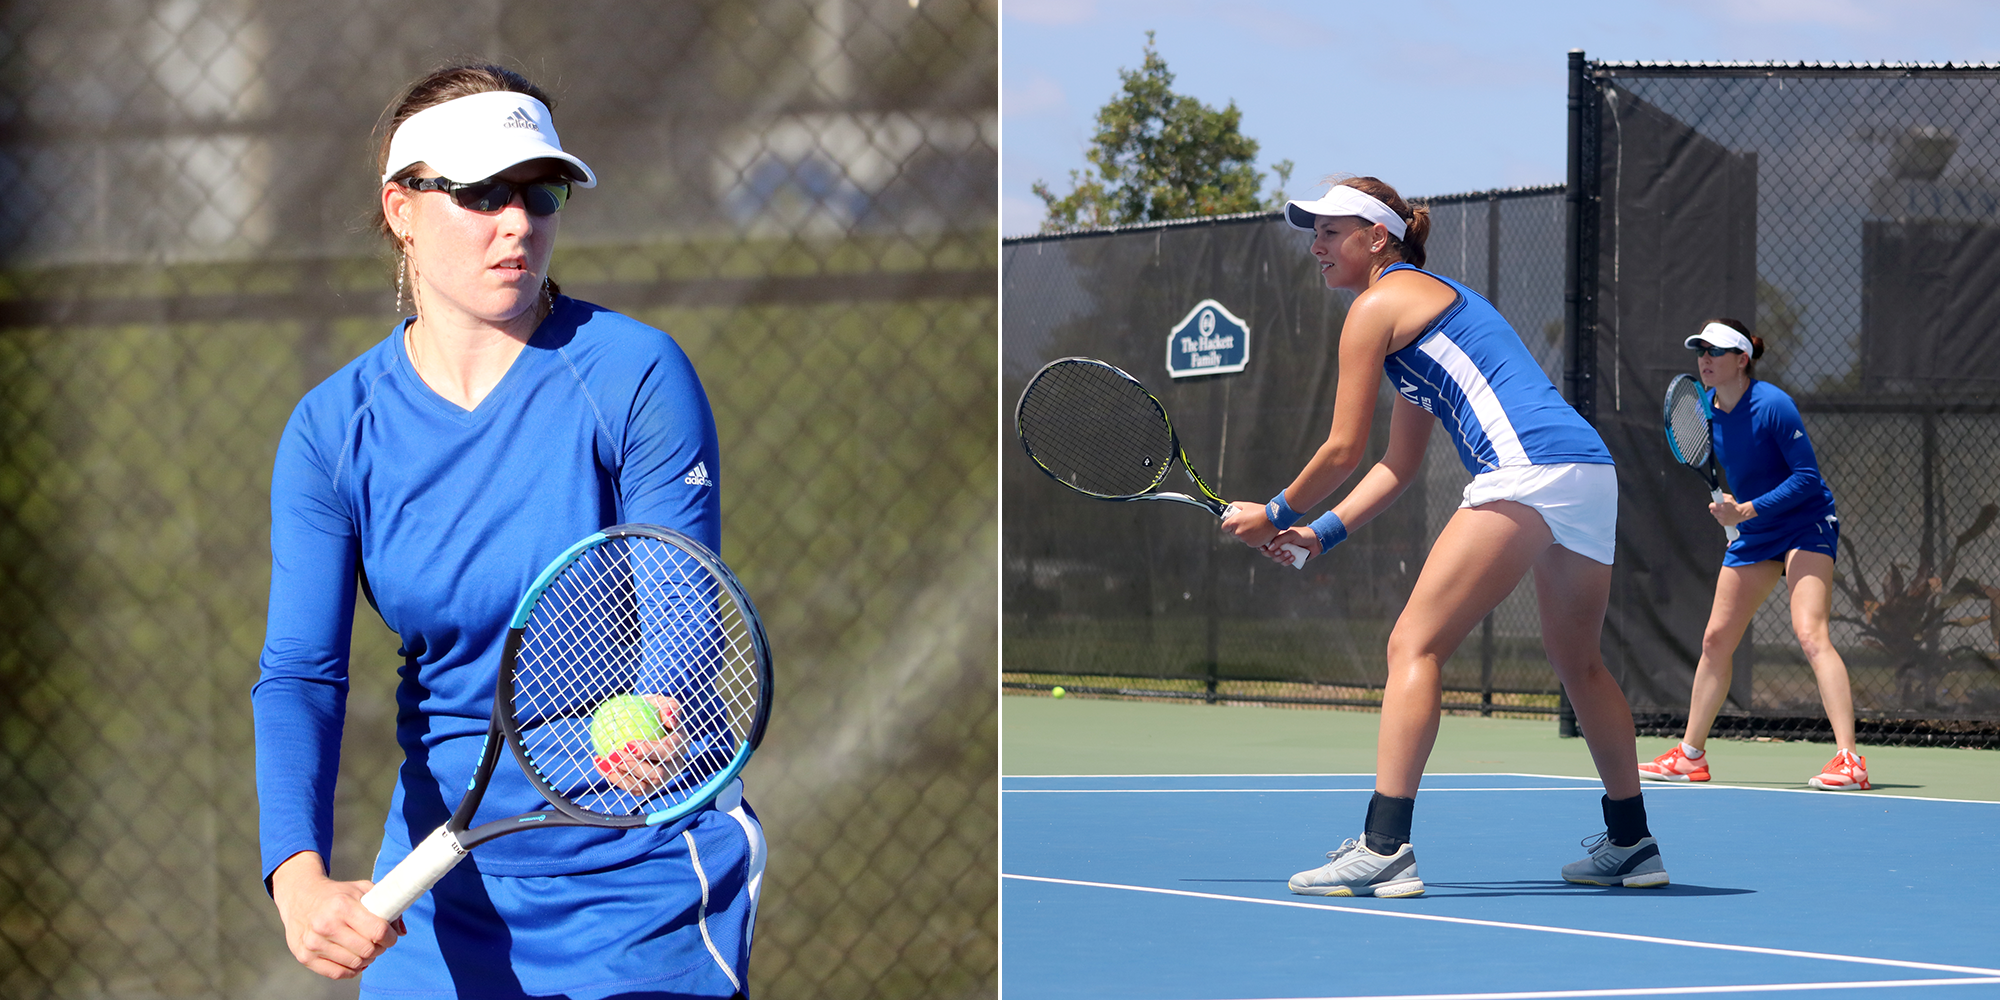 Boczova, Petrackova Earn ITA All-America Accolades